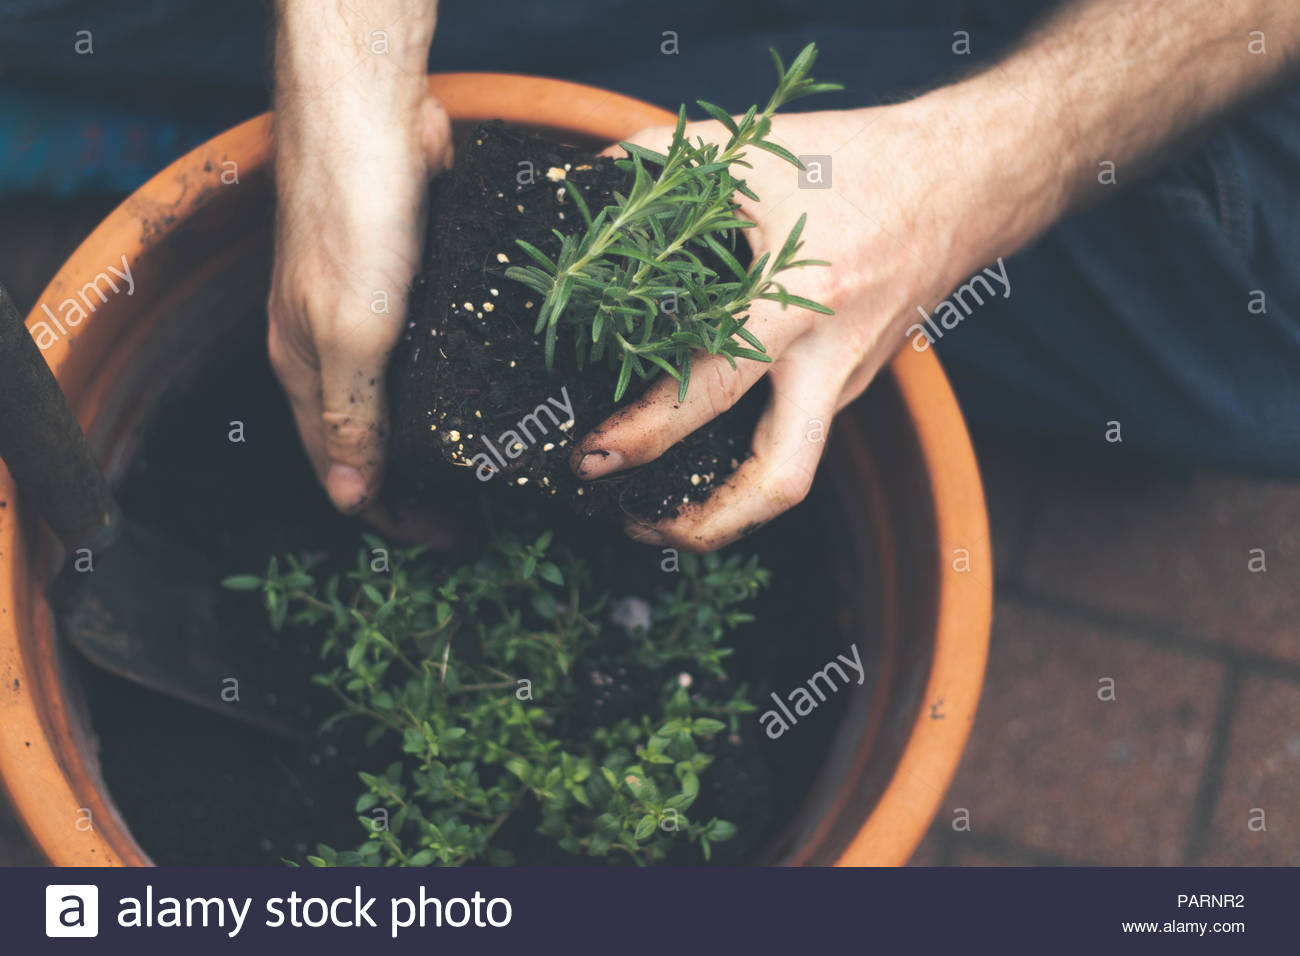 High angle view of human hands holding a potted plant Photo Stock